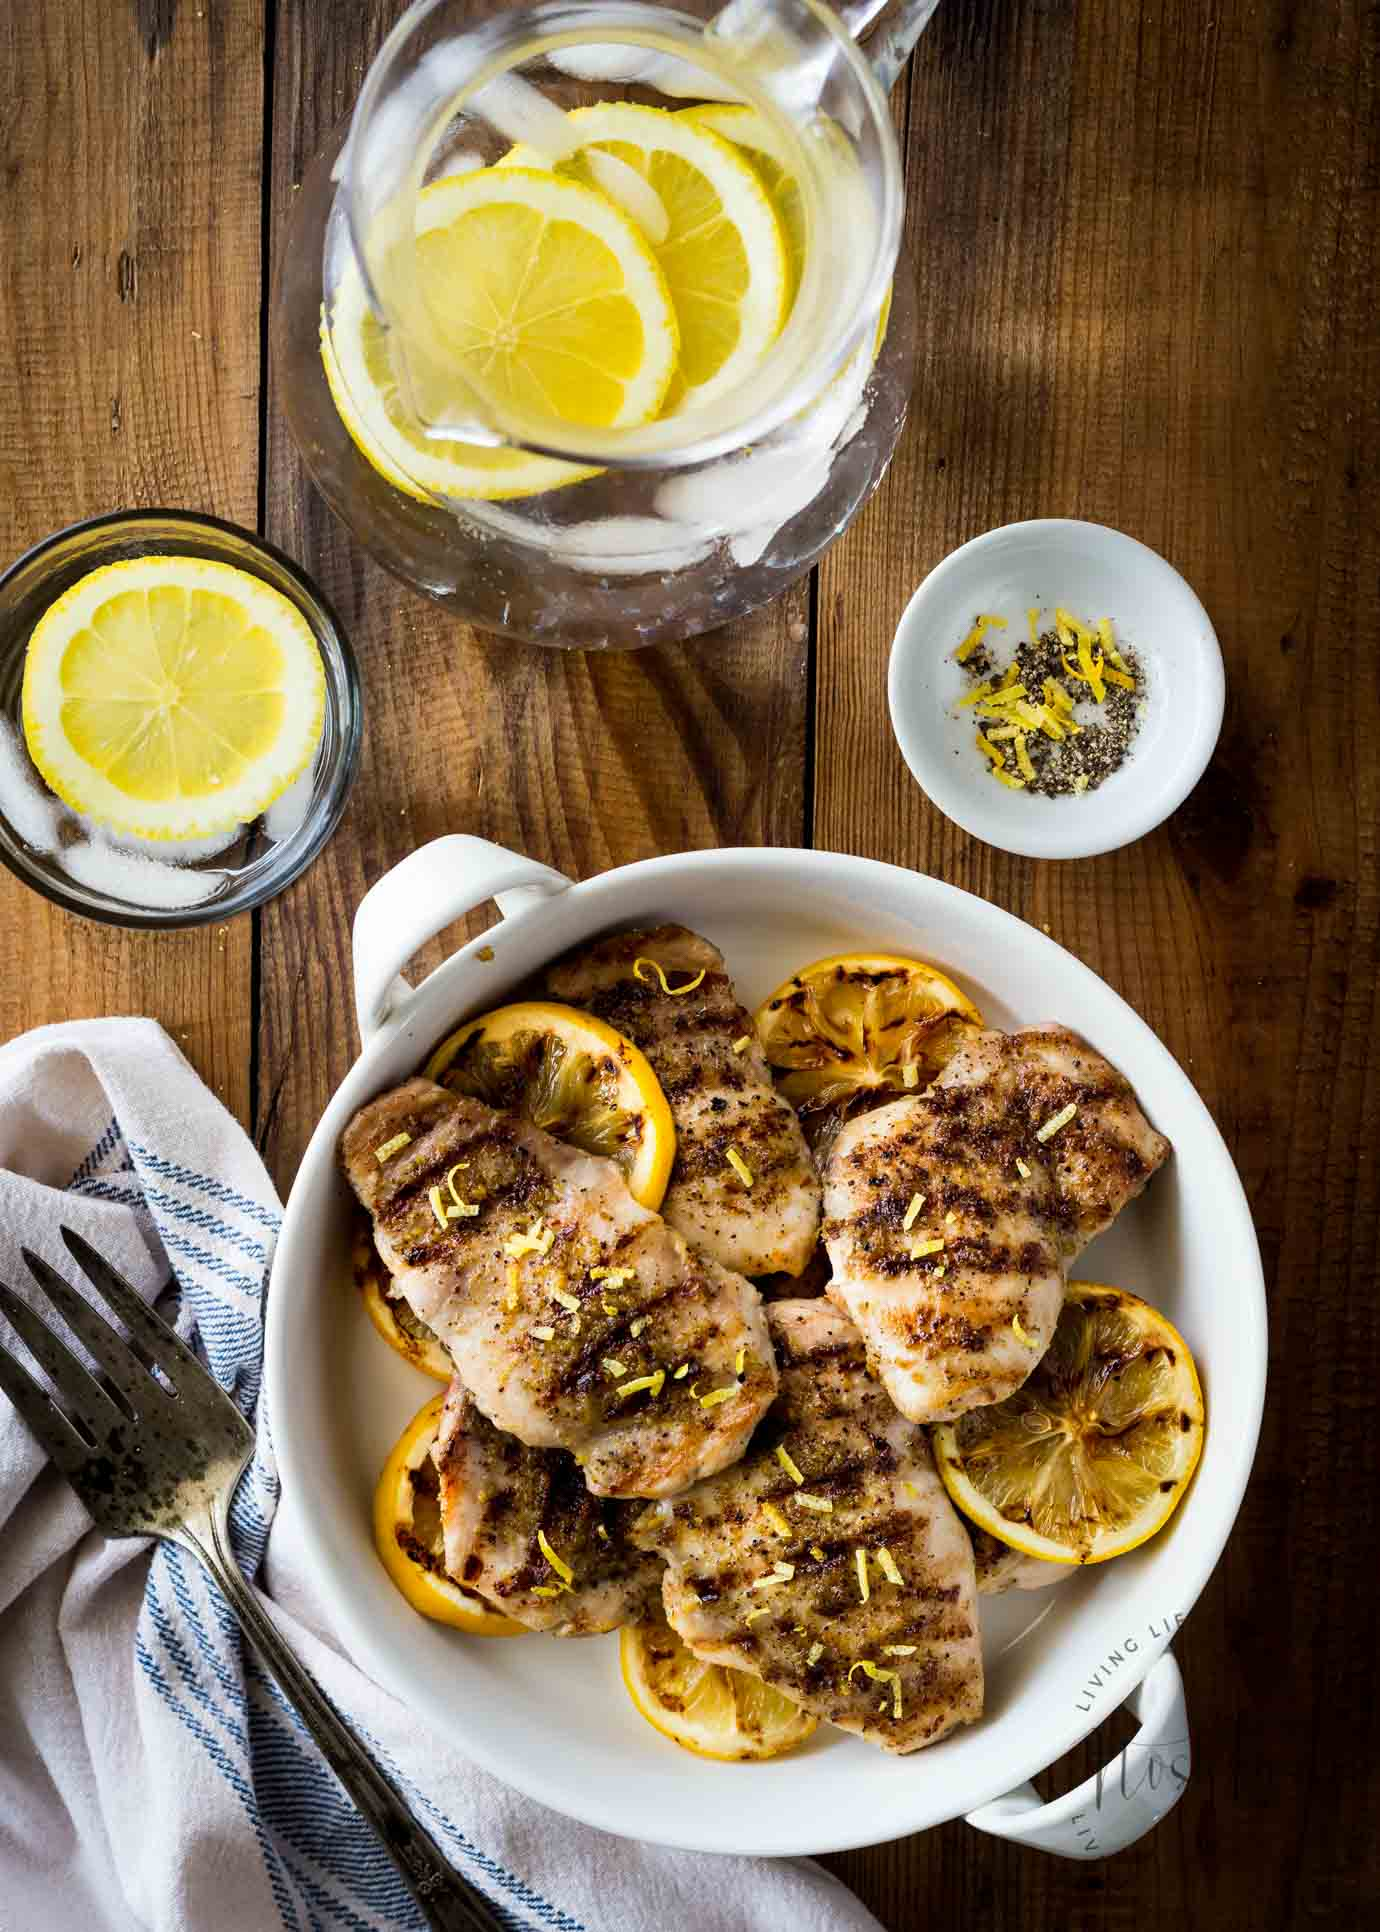 Healthy Lemon Pepper Chicken with a perfect homemade, from scratch, seasoning! Contains lemon zest, garlic, salt, pepper, and onion powder, it's gluten free, dairy free, paleo, whole30, low carb and healthy! You can pan fry it, bake it in the oven, or make it on the grill, it's so easy!